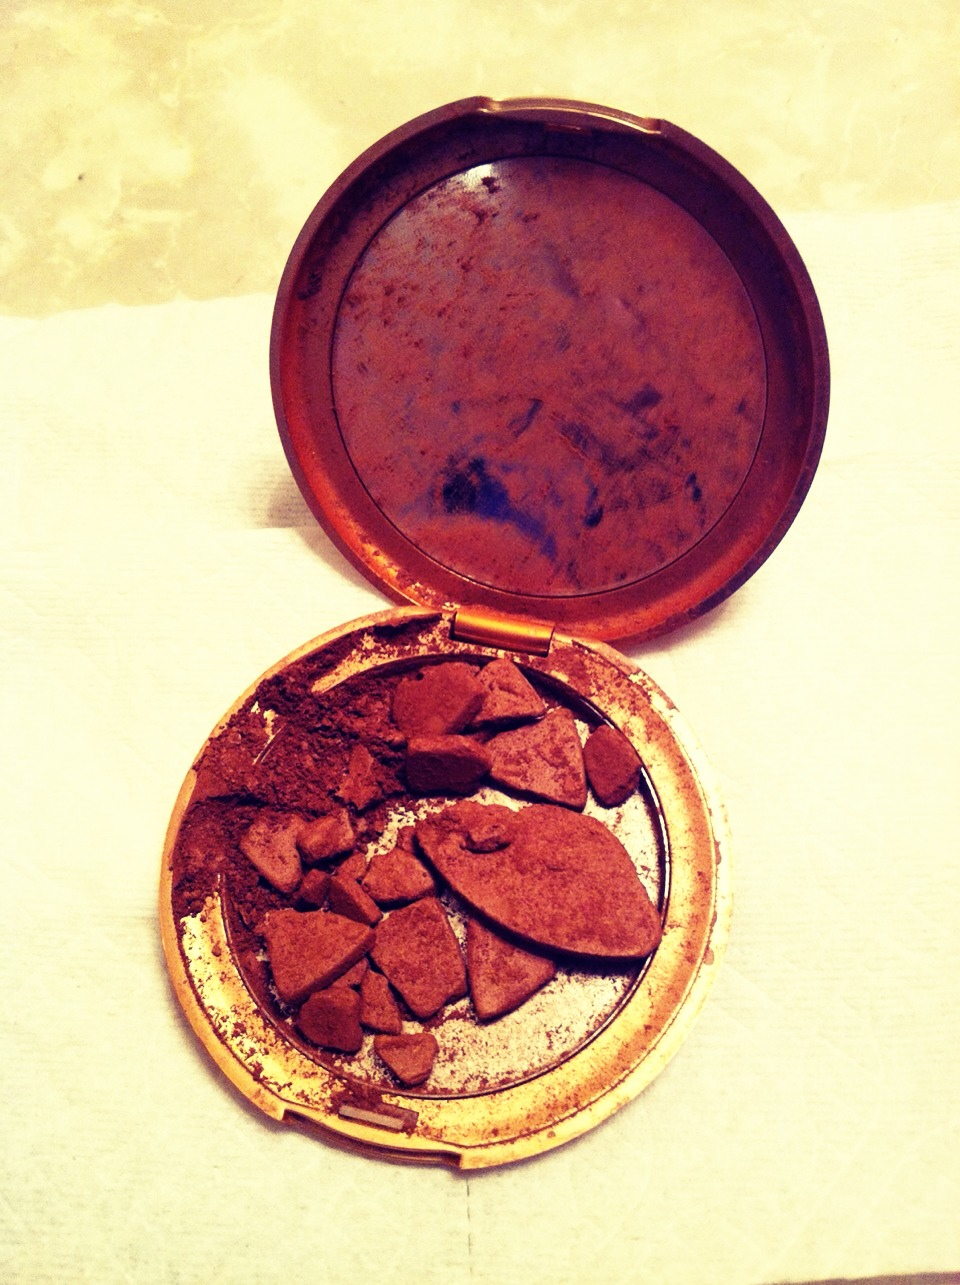 Shattered your favorite makeup? Mix with rubbing alcohol until it turns to 'batter', once mixed, cover with Saran Wrap and press back into shape with a coin